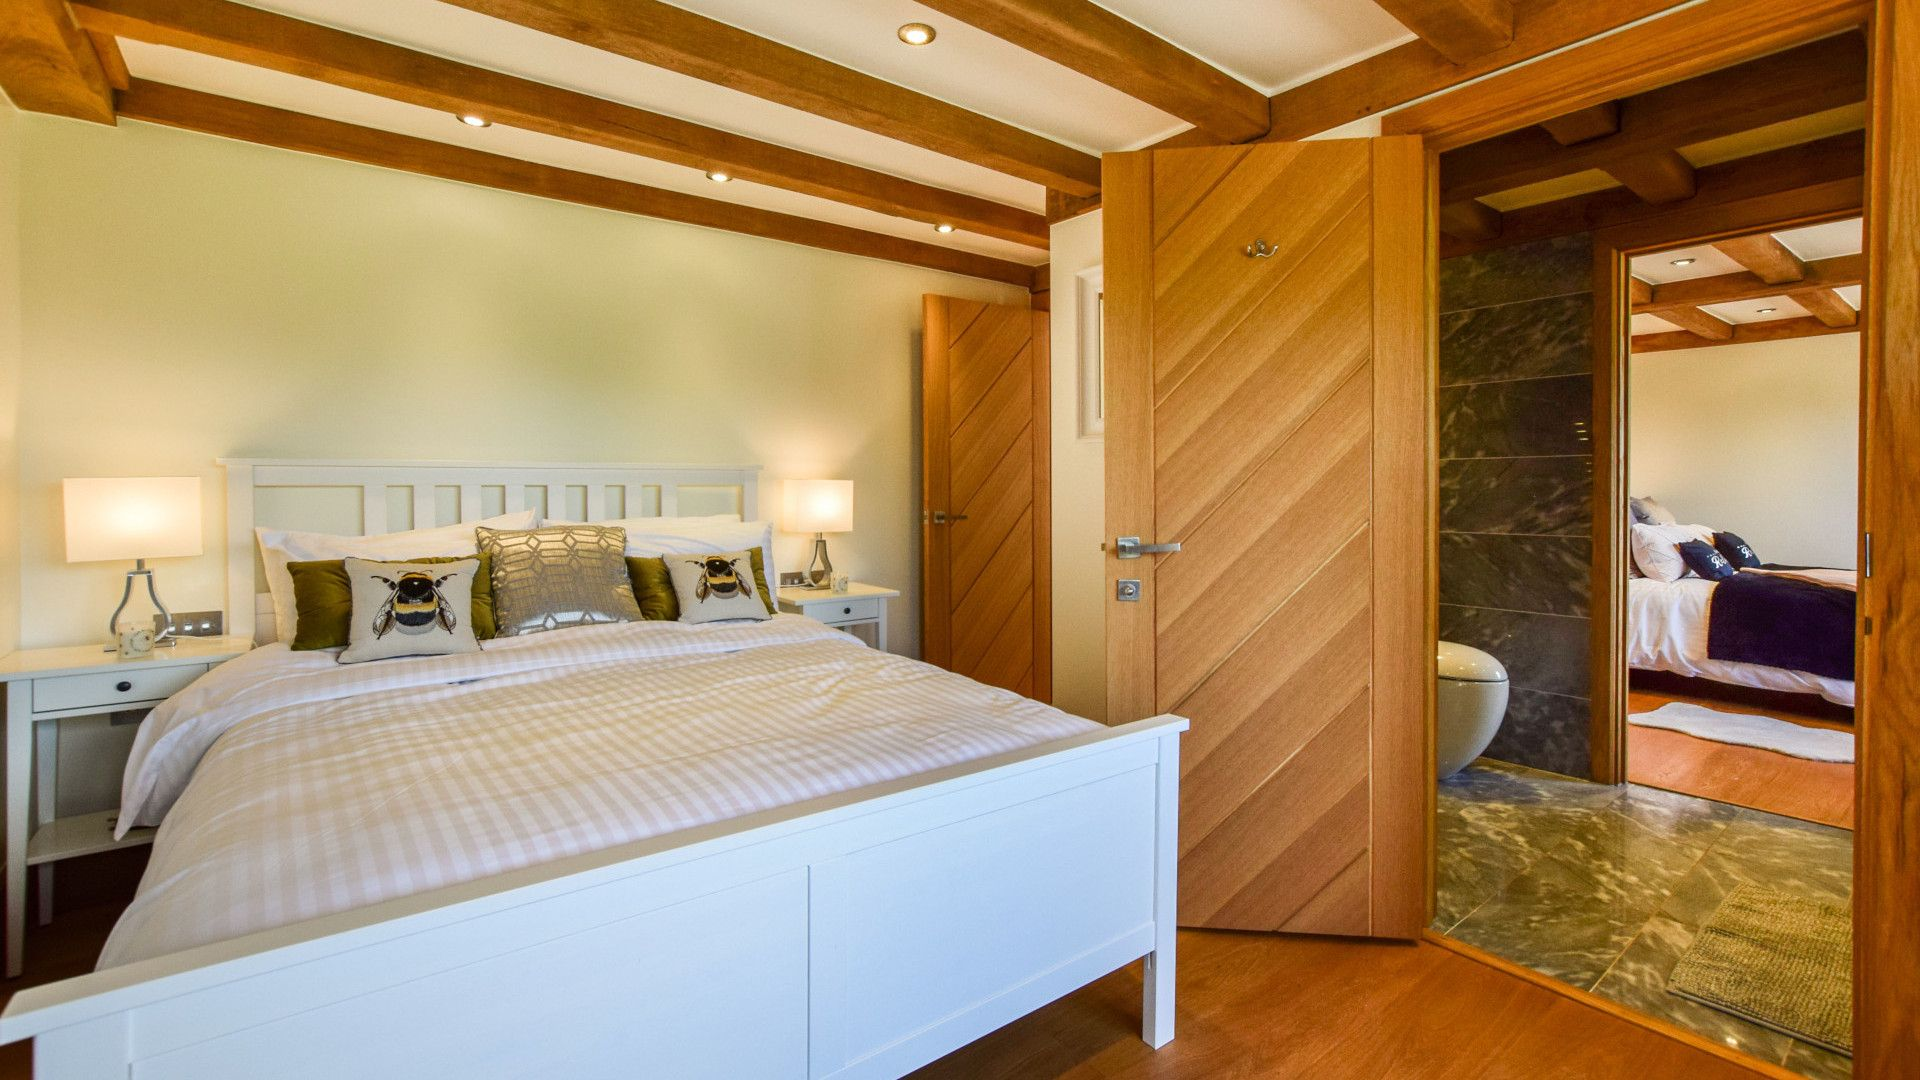 Bedroom 3 with king-size bed, Old Oak House, Bolthole Retreats